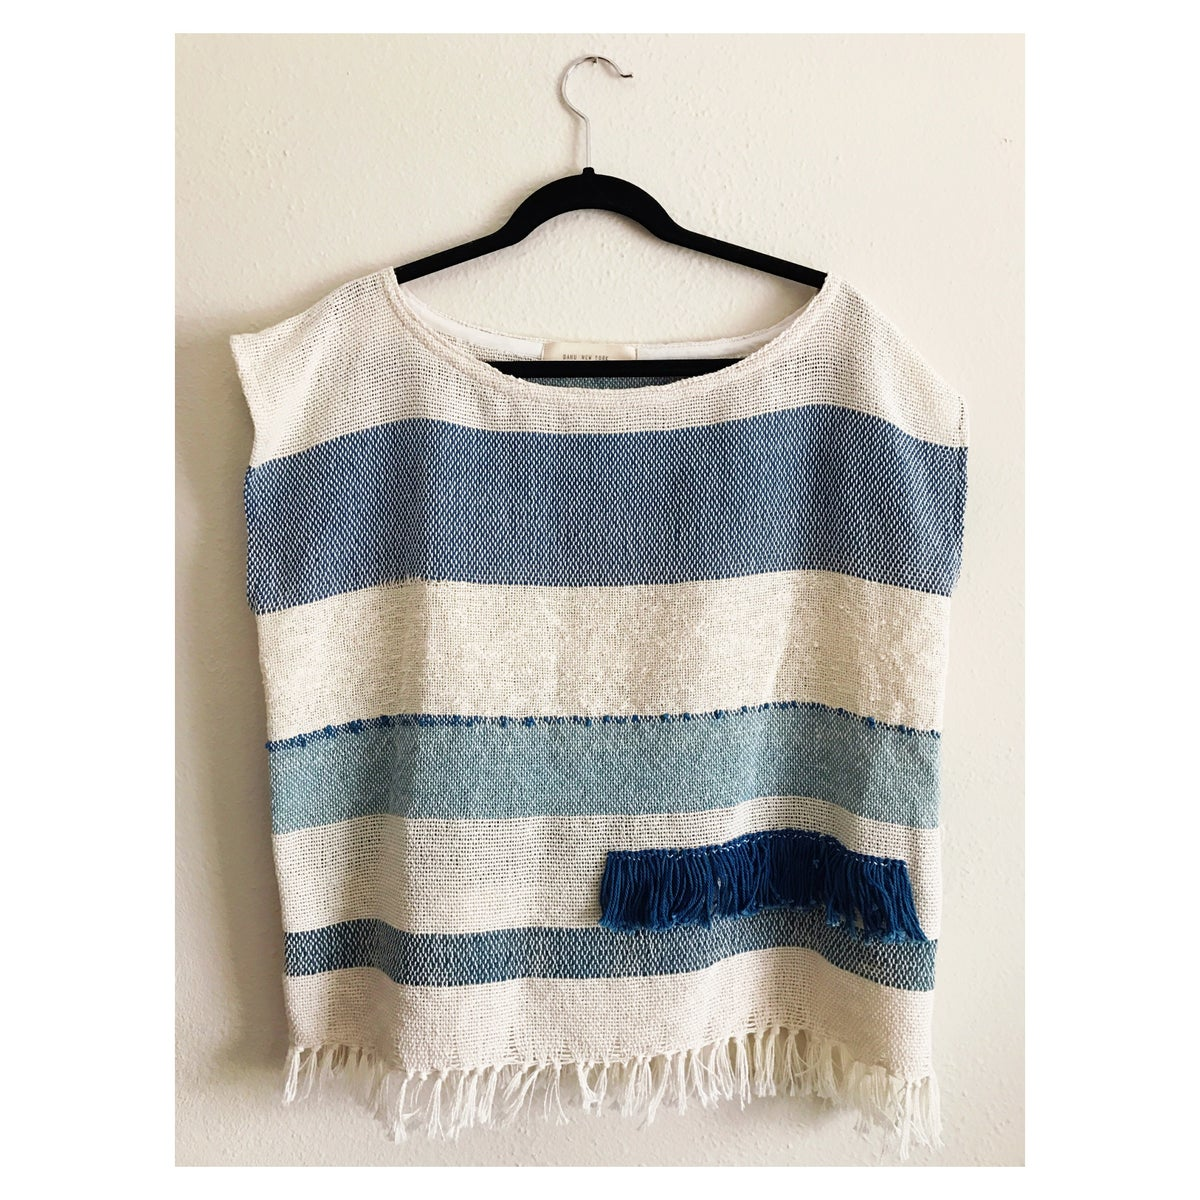 Image of Indigo Fringe Top